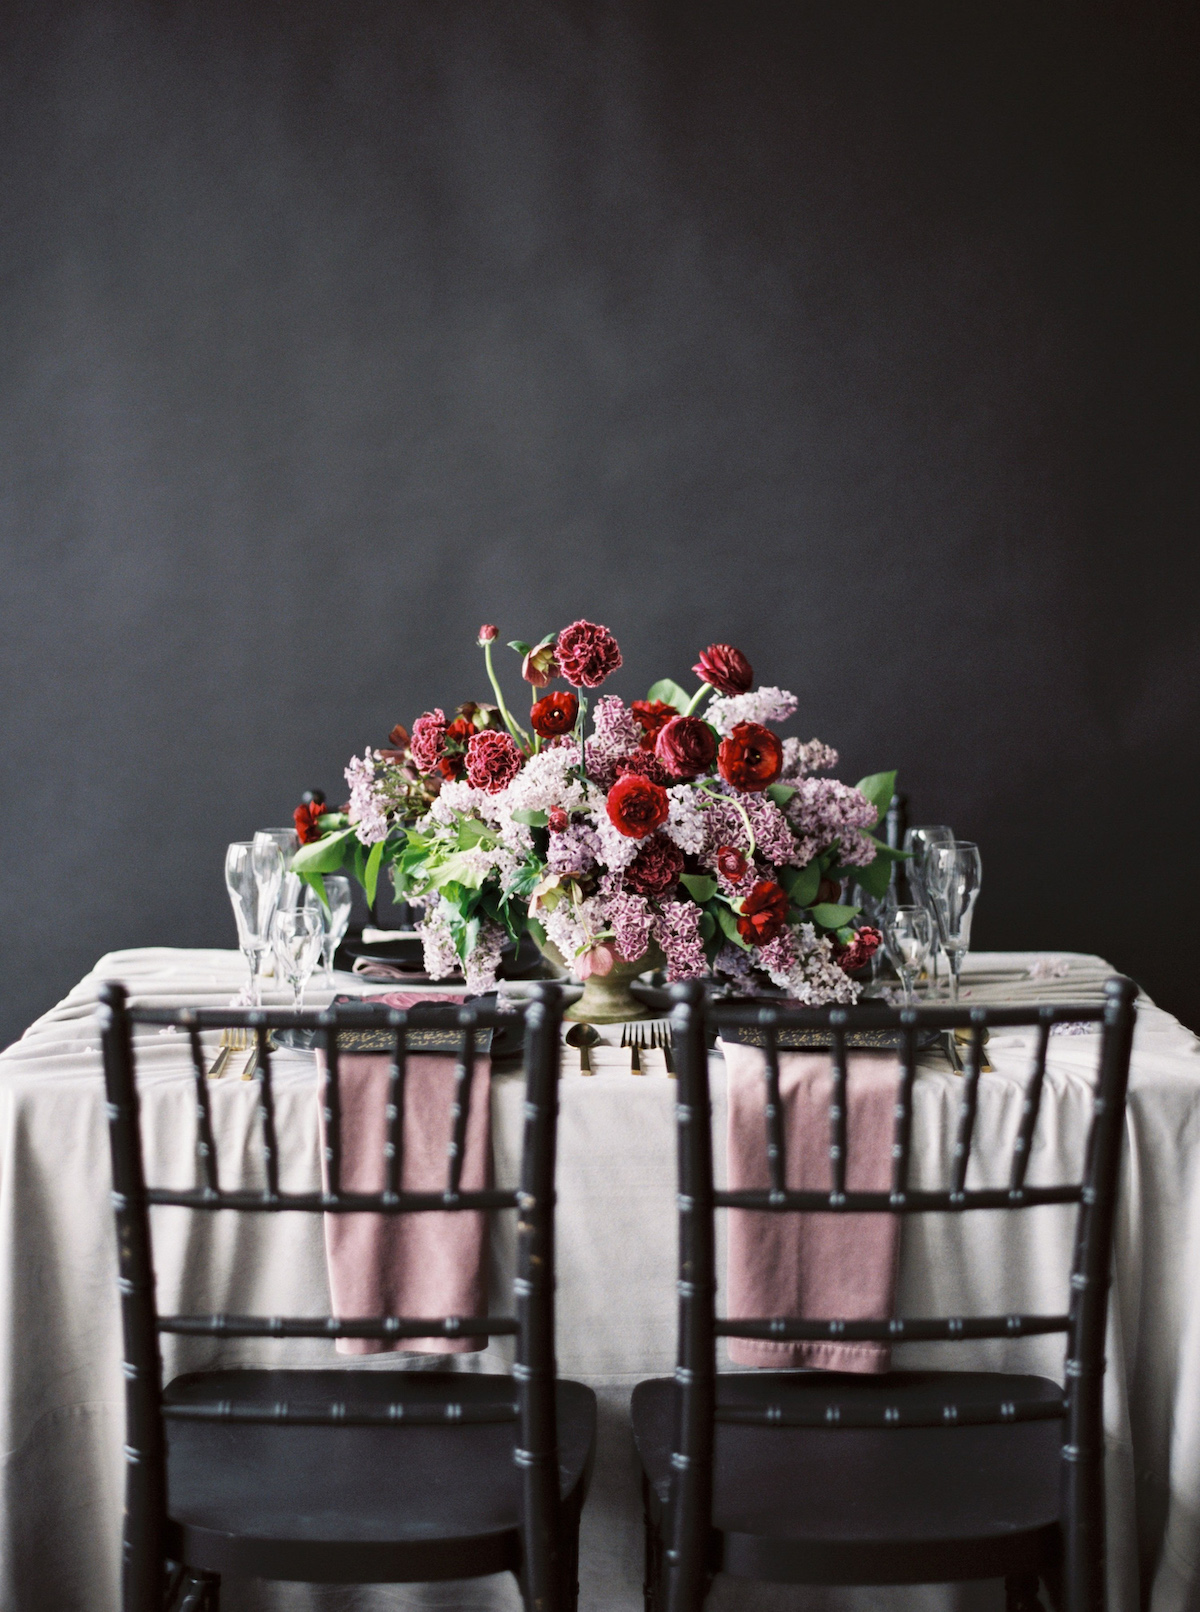 Moody wedding tablescape with black chairs andpale blush table cloth